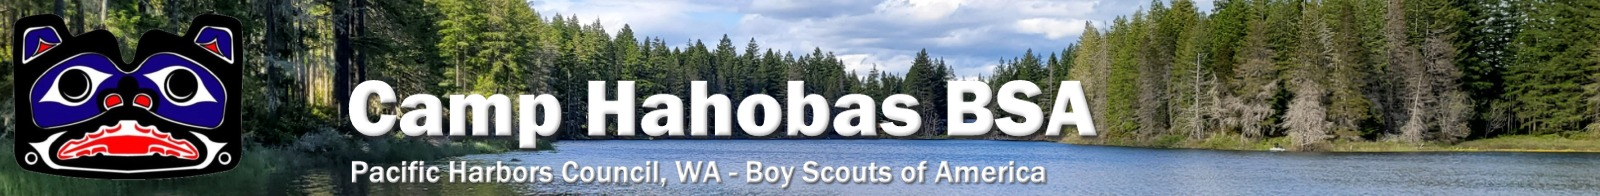 Camp Habobas Scout Reservation Boy Scout Camp - Pacific Harbors, WA - Boy Scouts of America